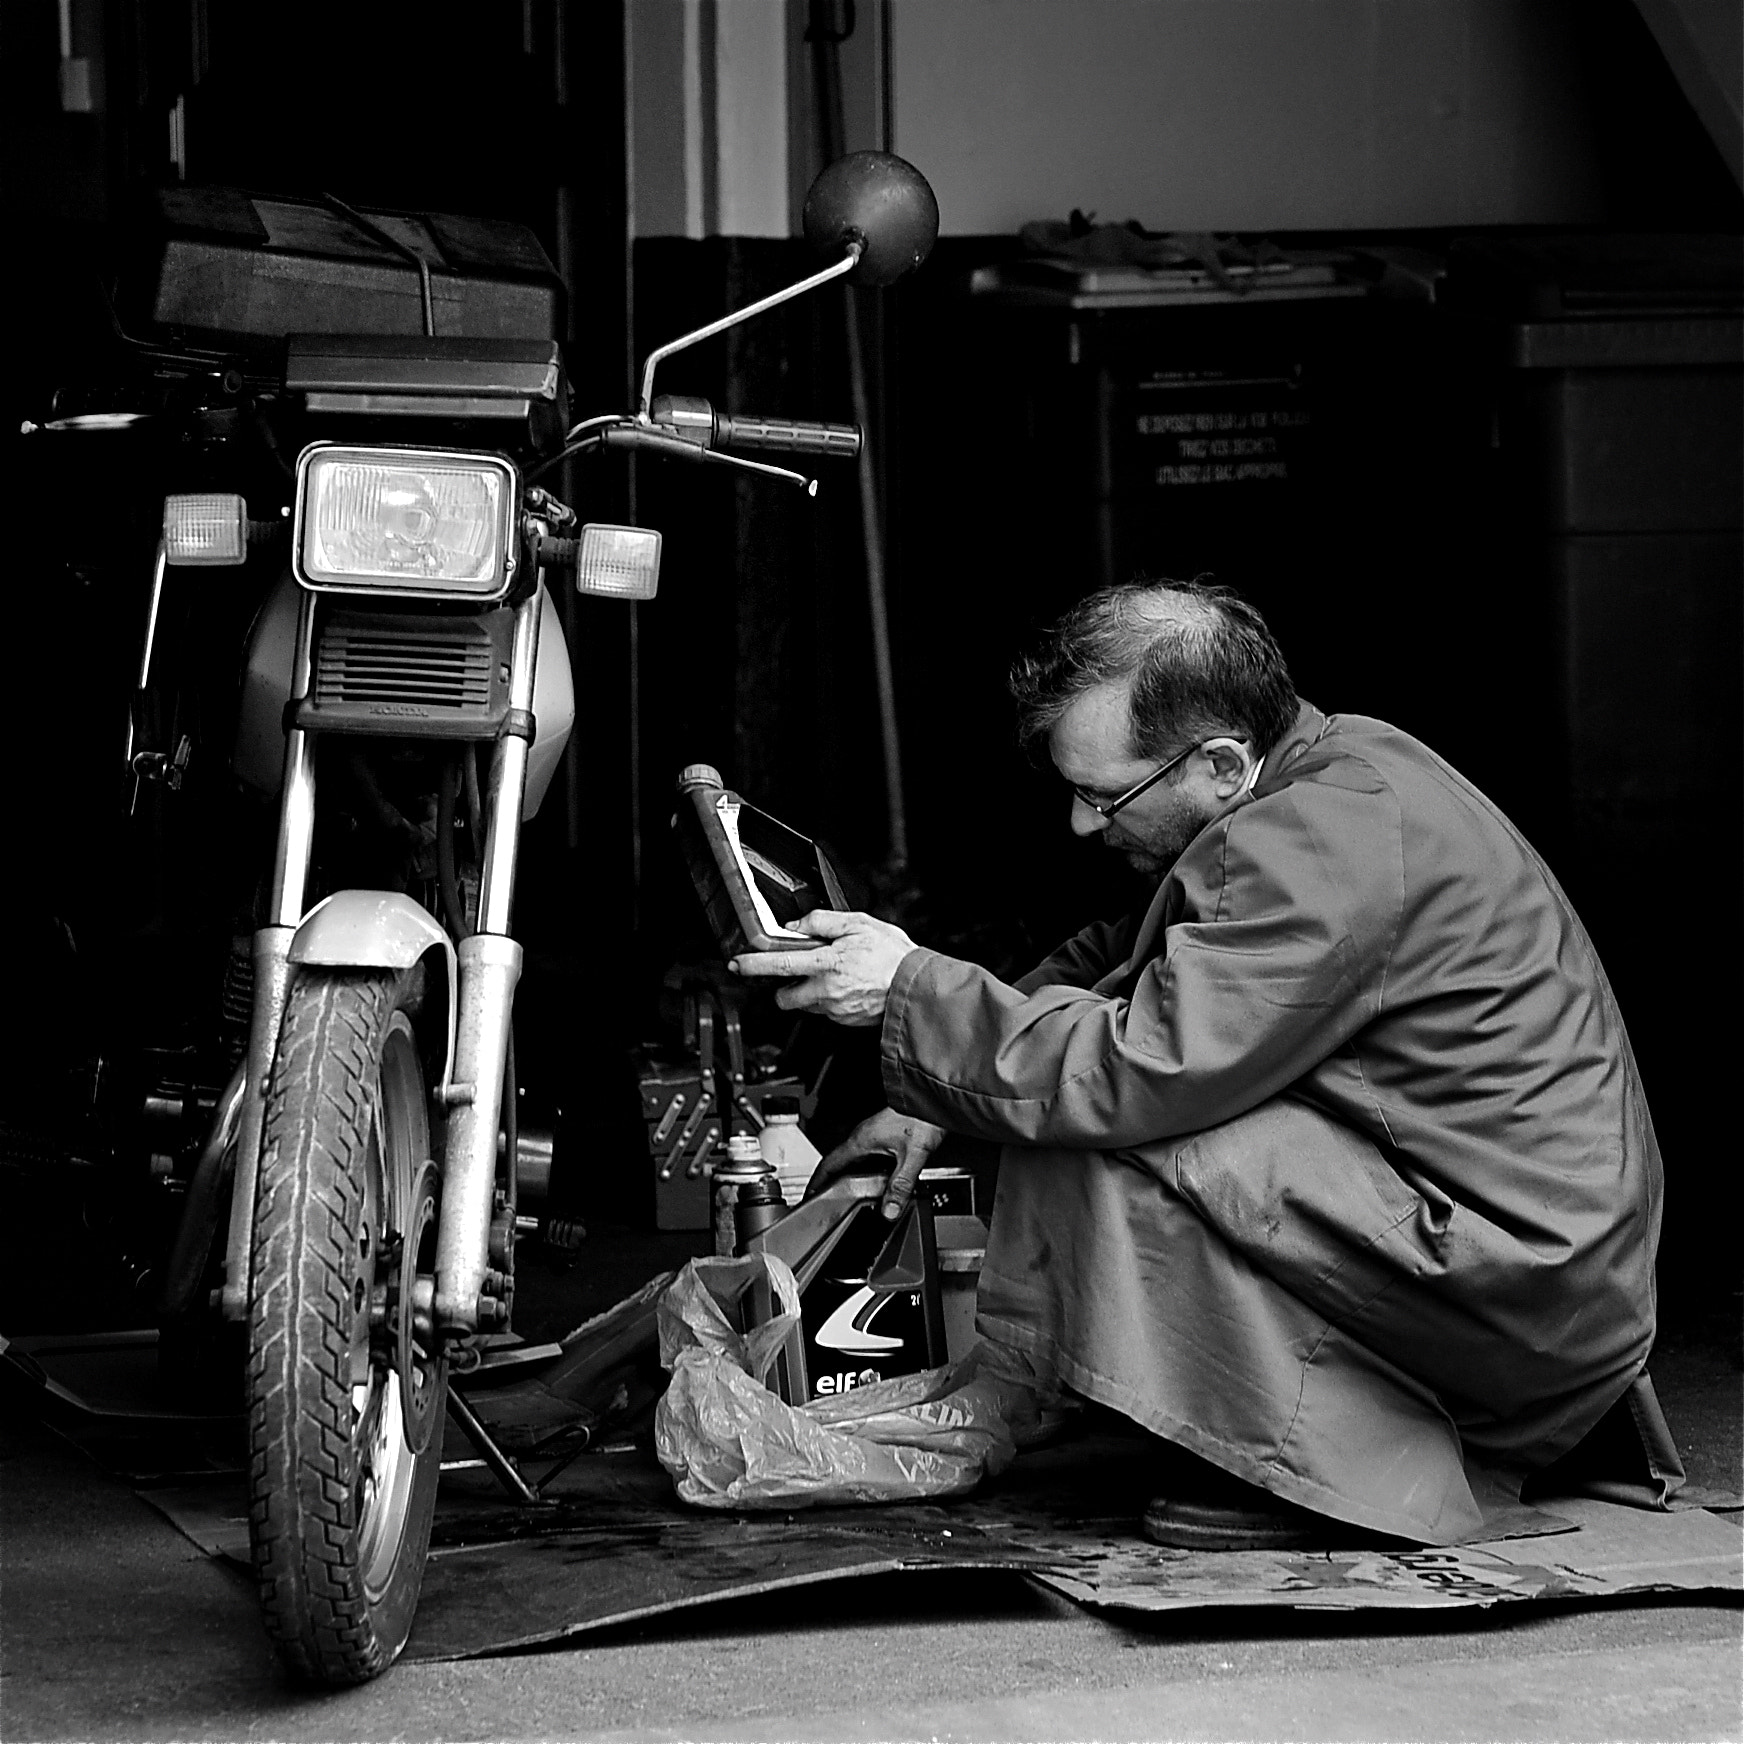 Photograph Maintenance by Guib_Did Didier on 500px